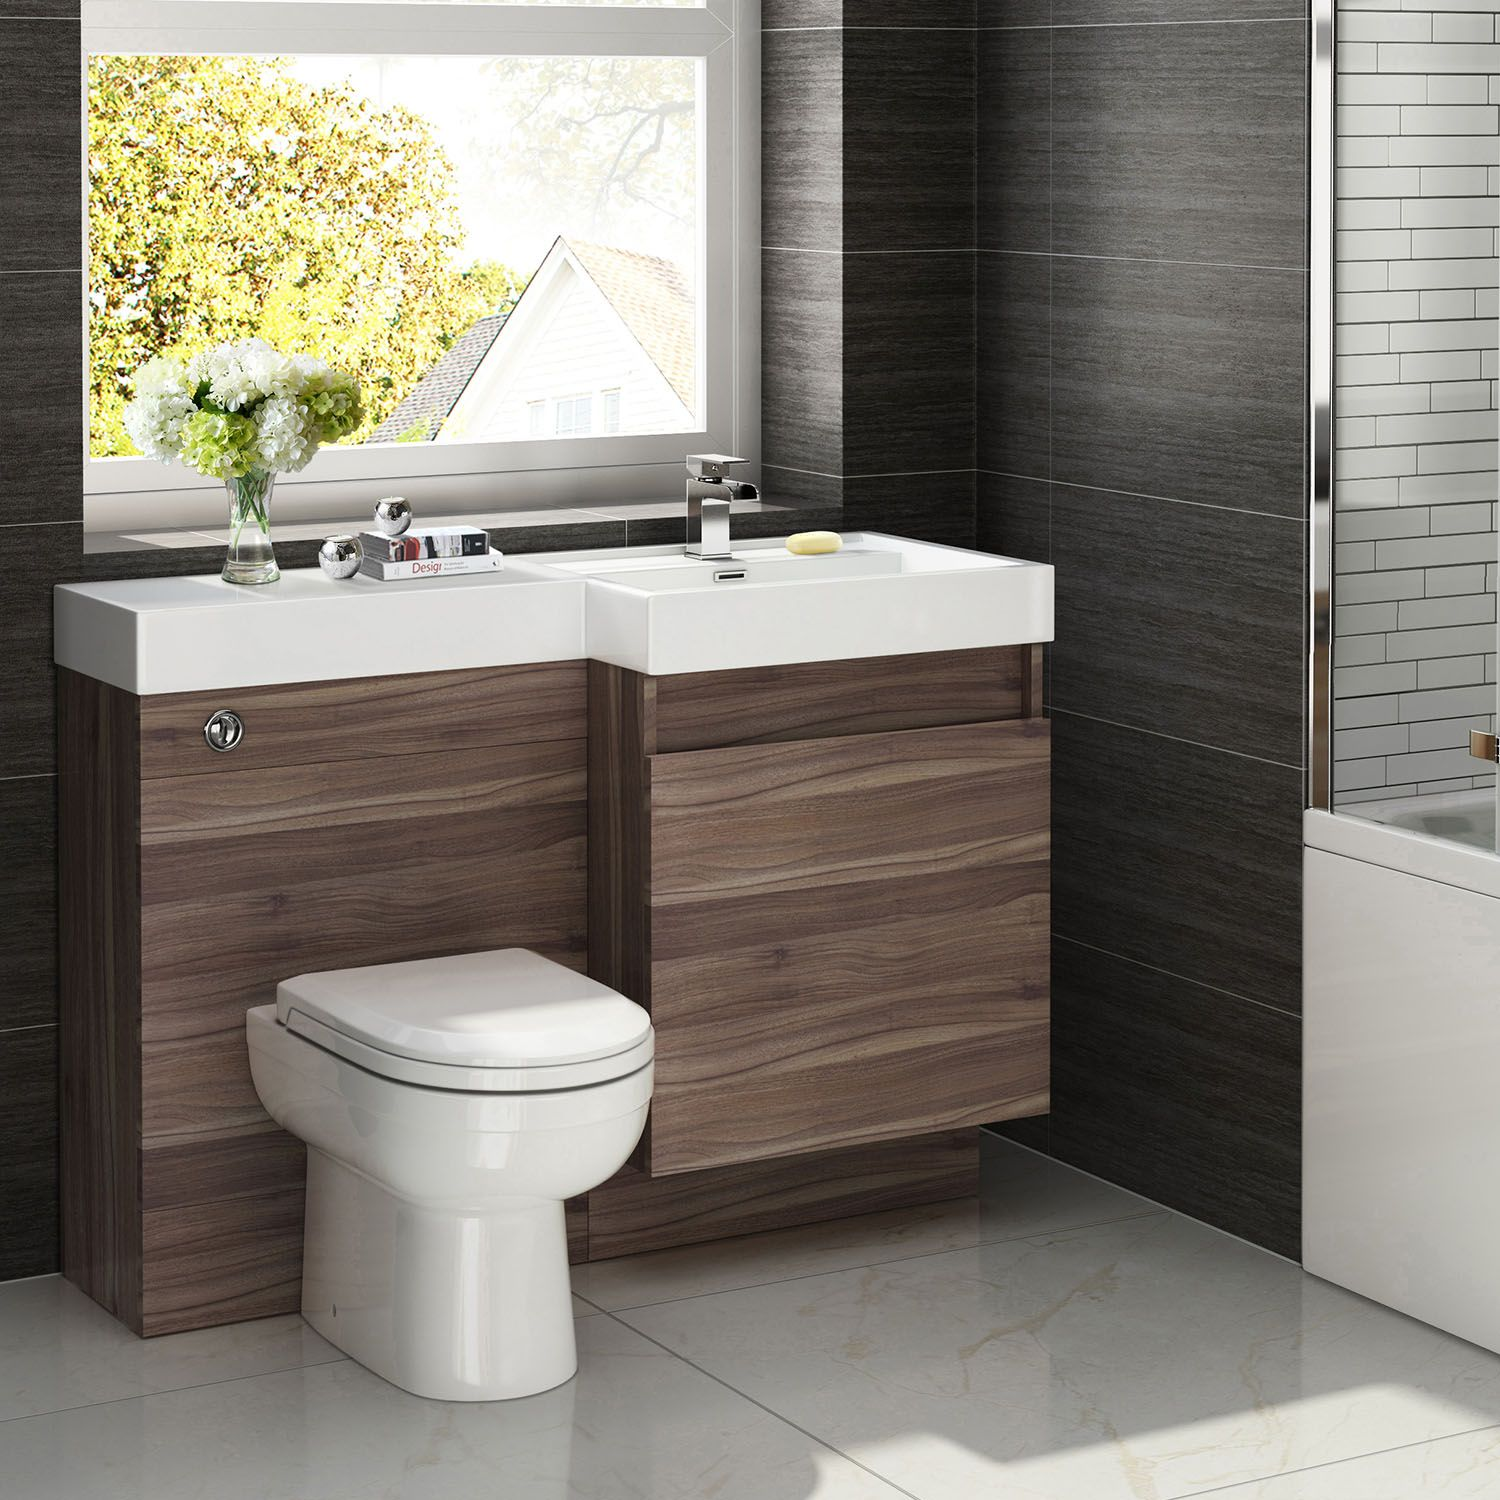 Ordinaire Conterporay Bathroom Vanities And Sinks Atlanta With Modern Chrome Faucet  And Walnut Finish